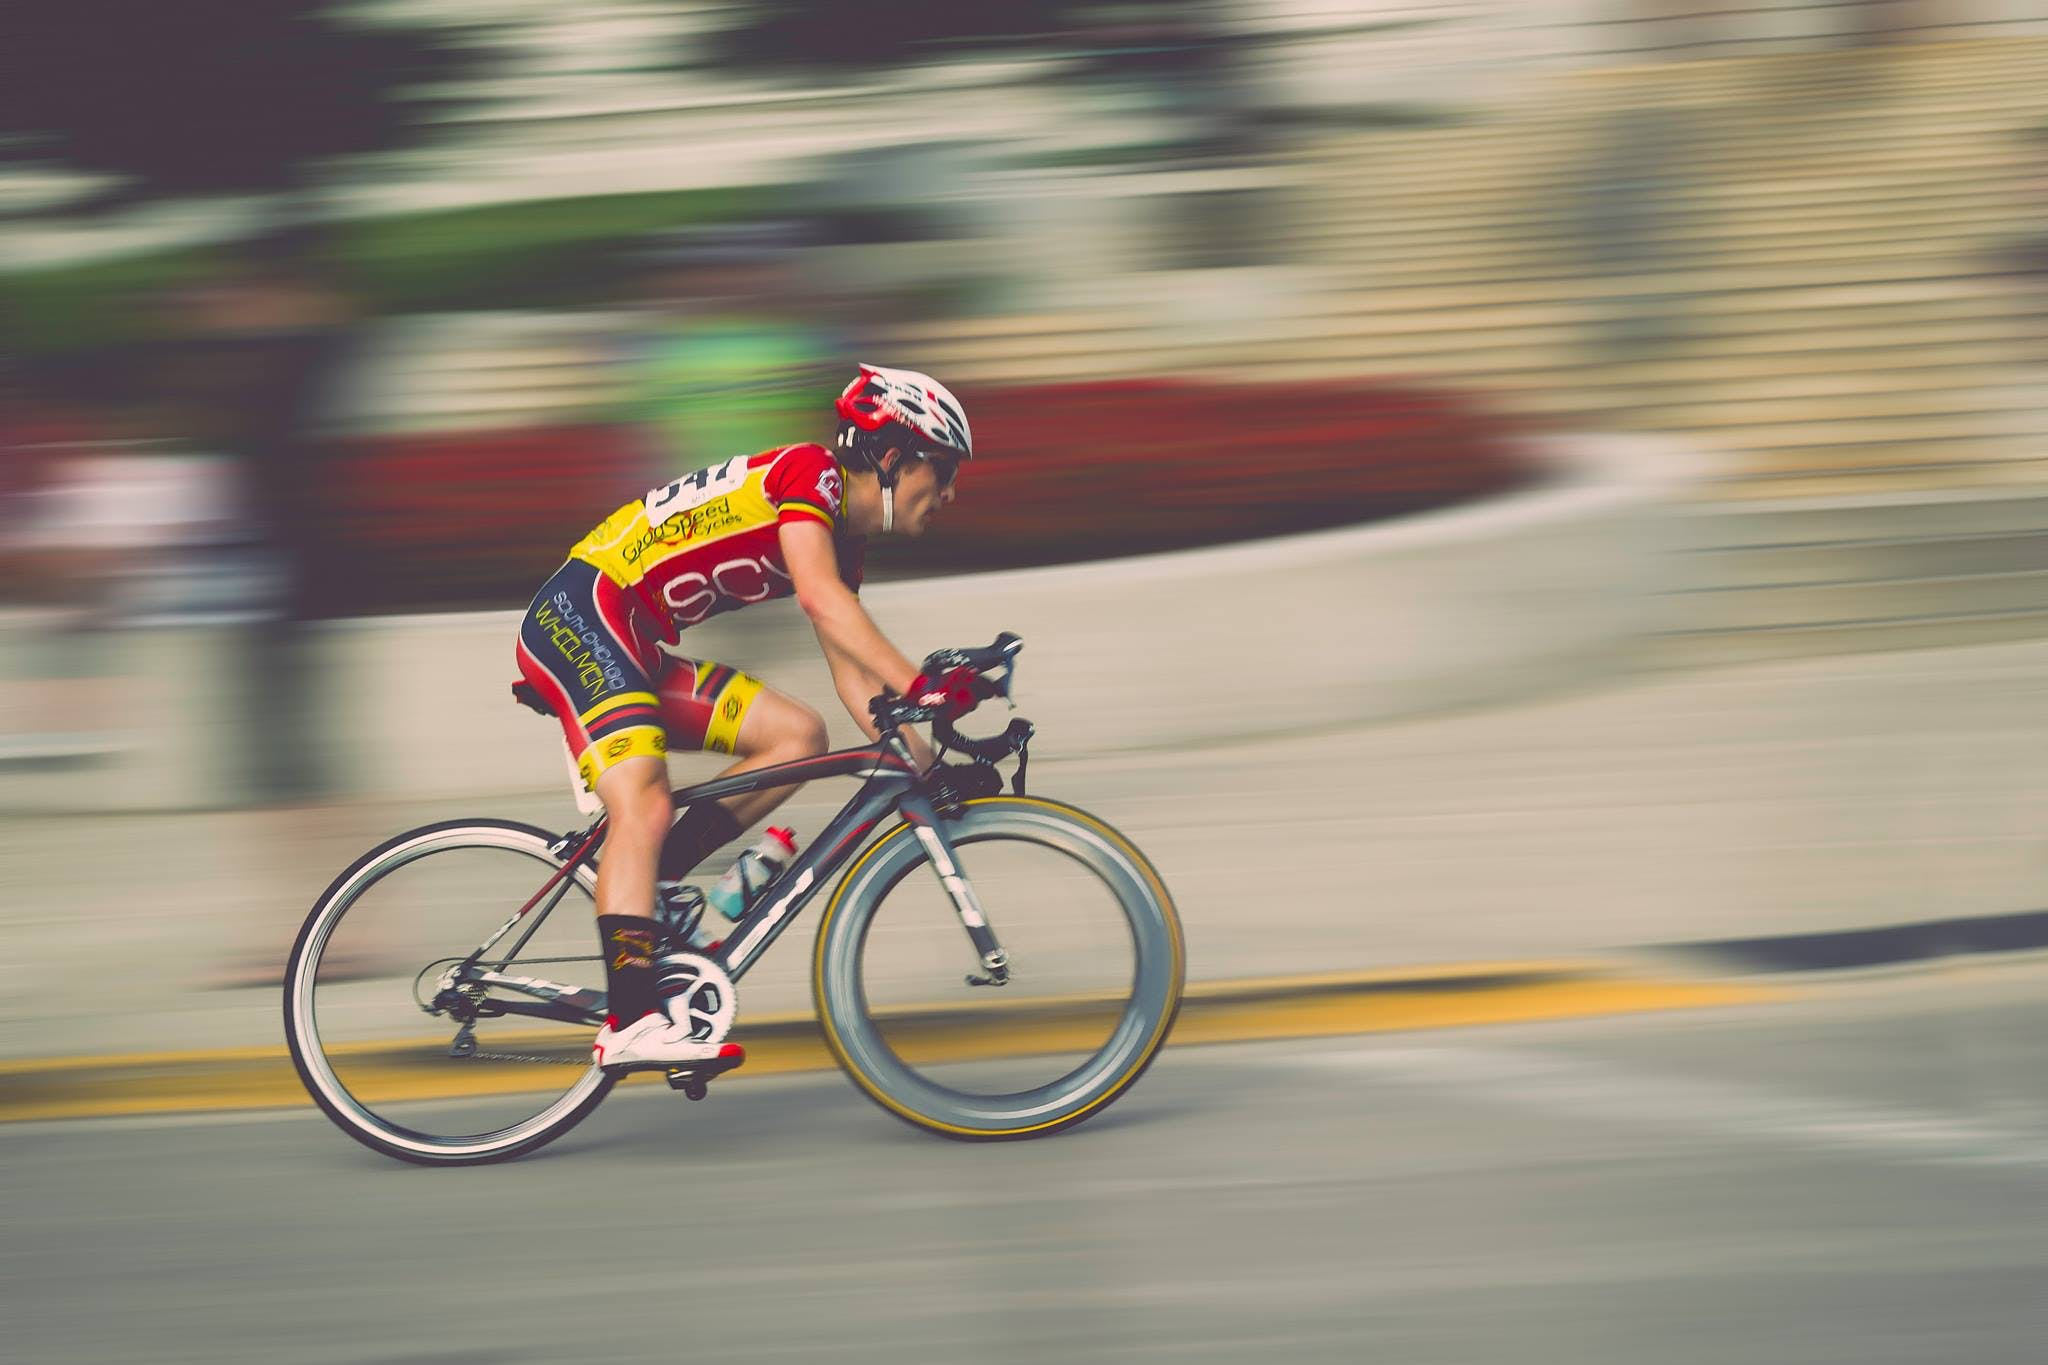 athlete, bicycle, bicyclist